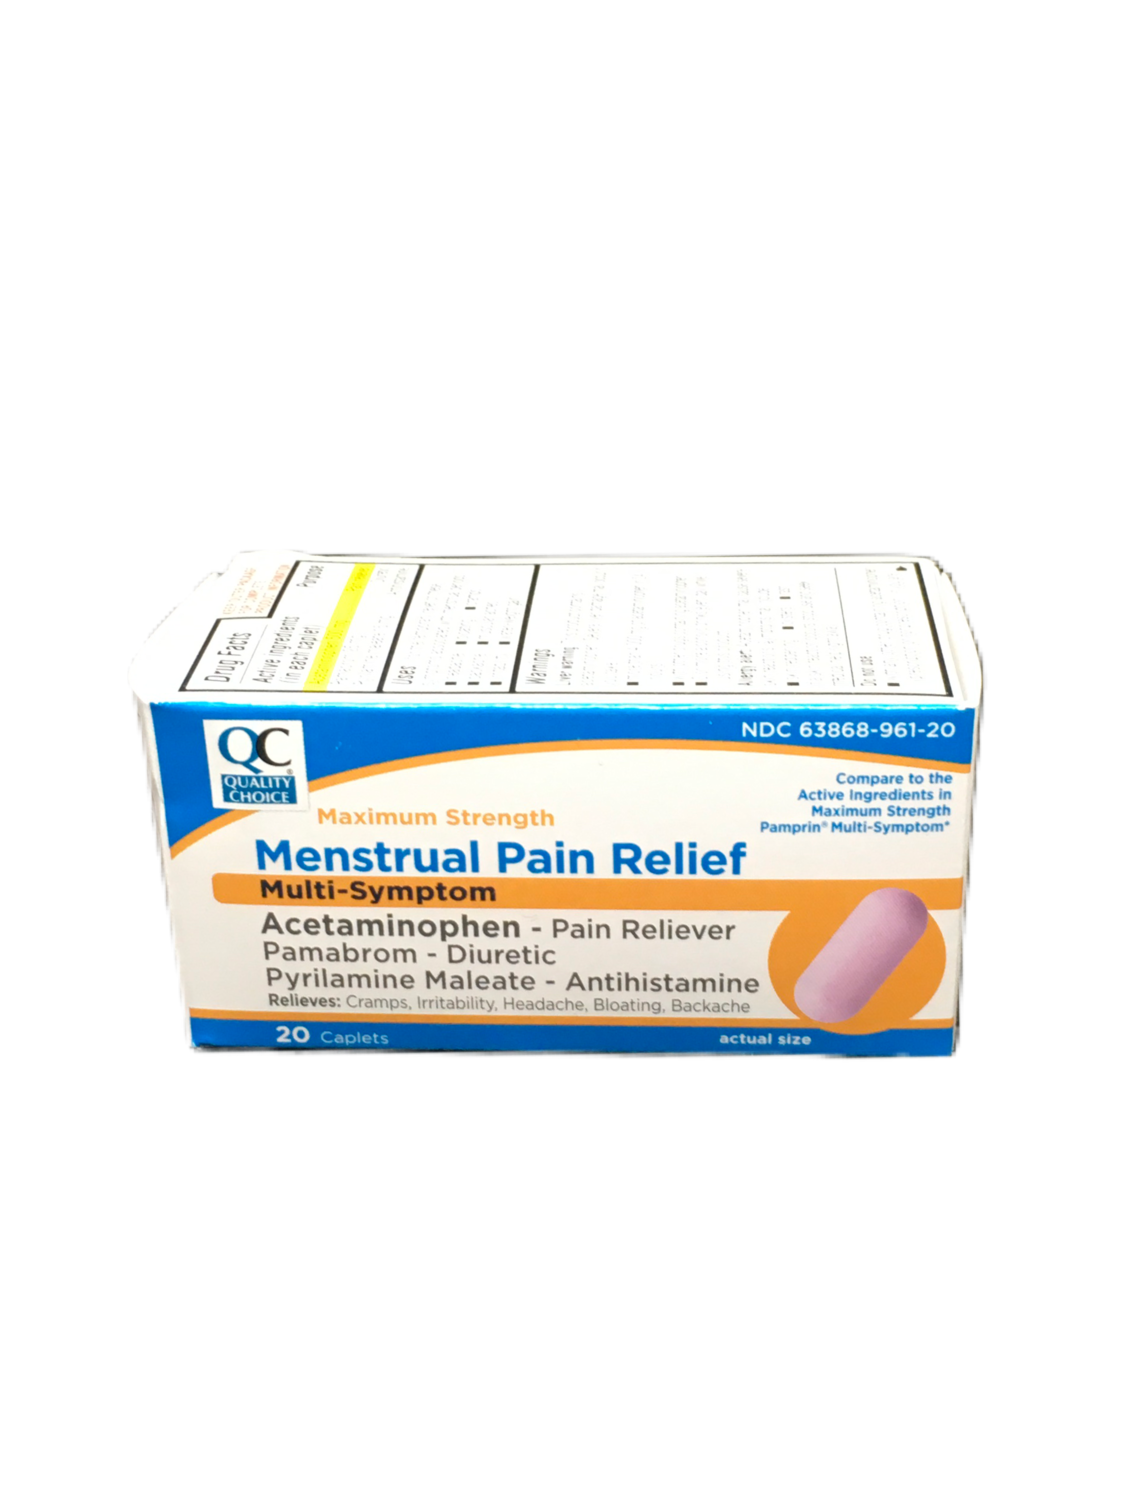 QC Menstrual Pain Relief Max Strength